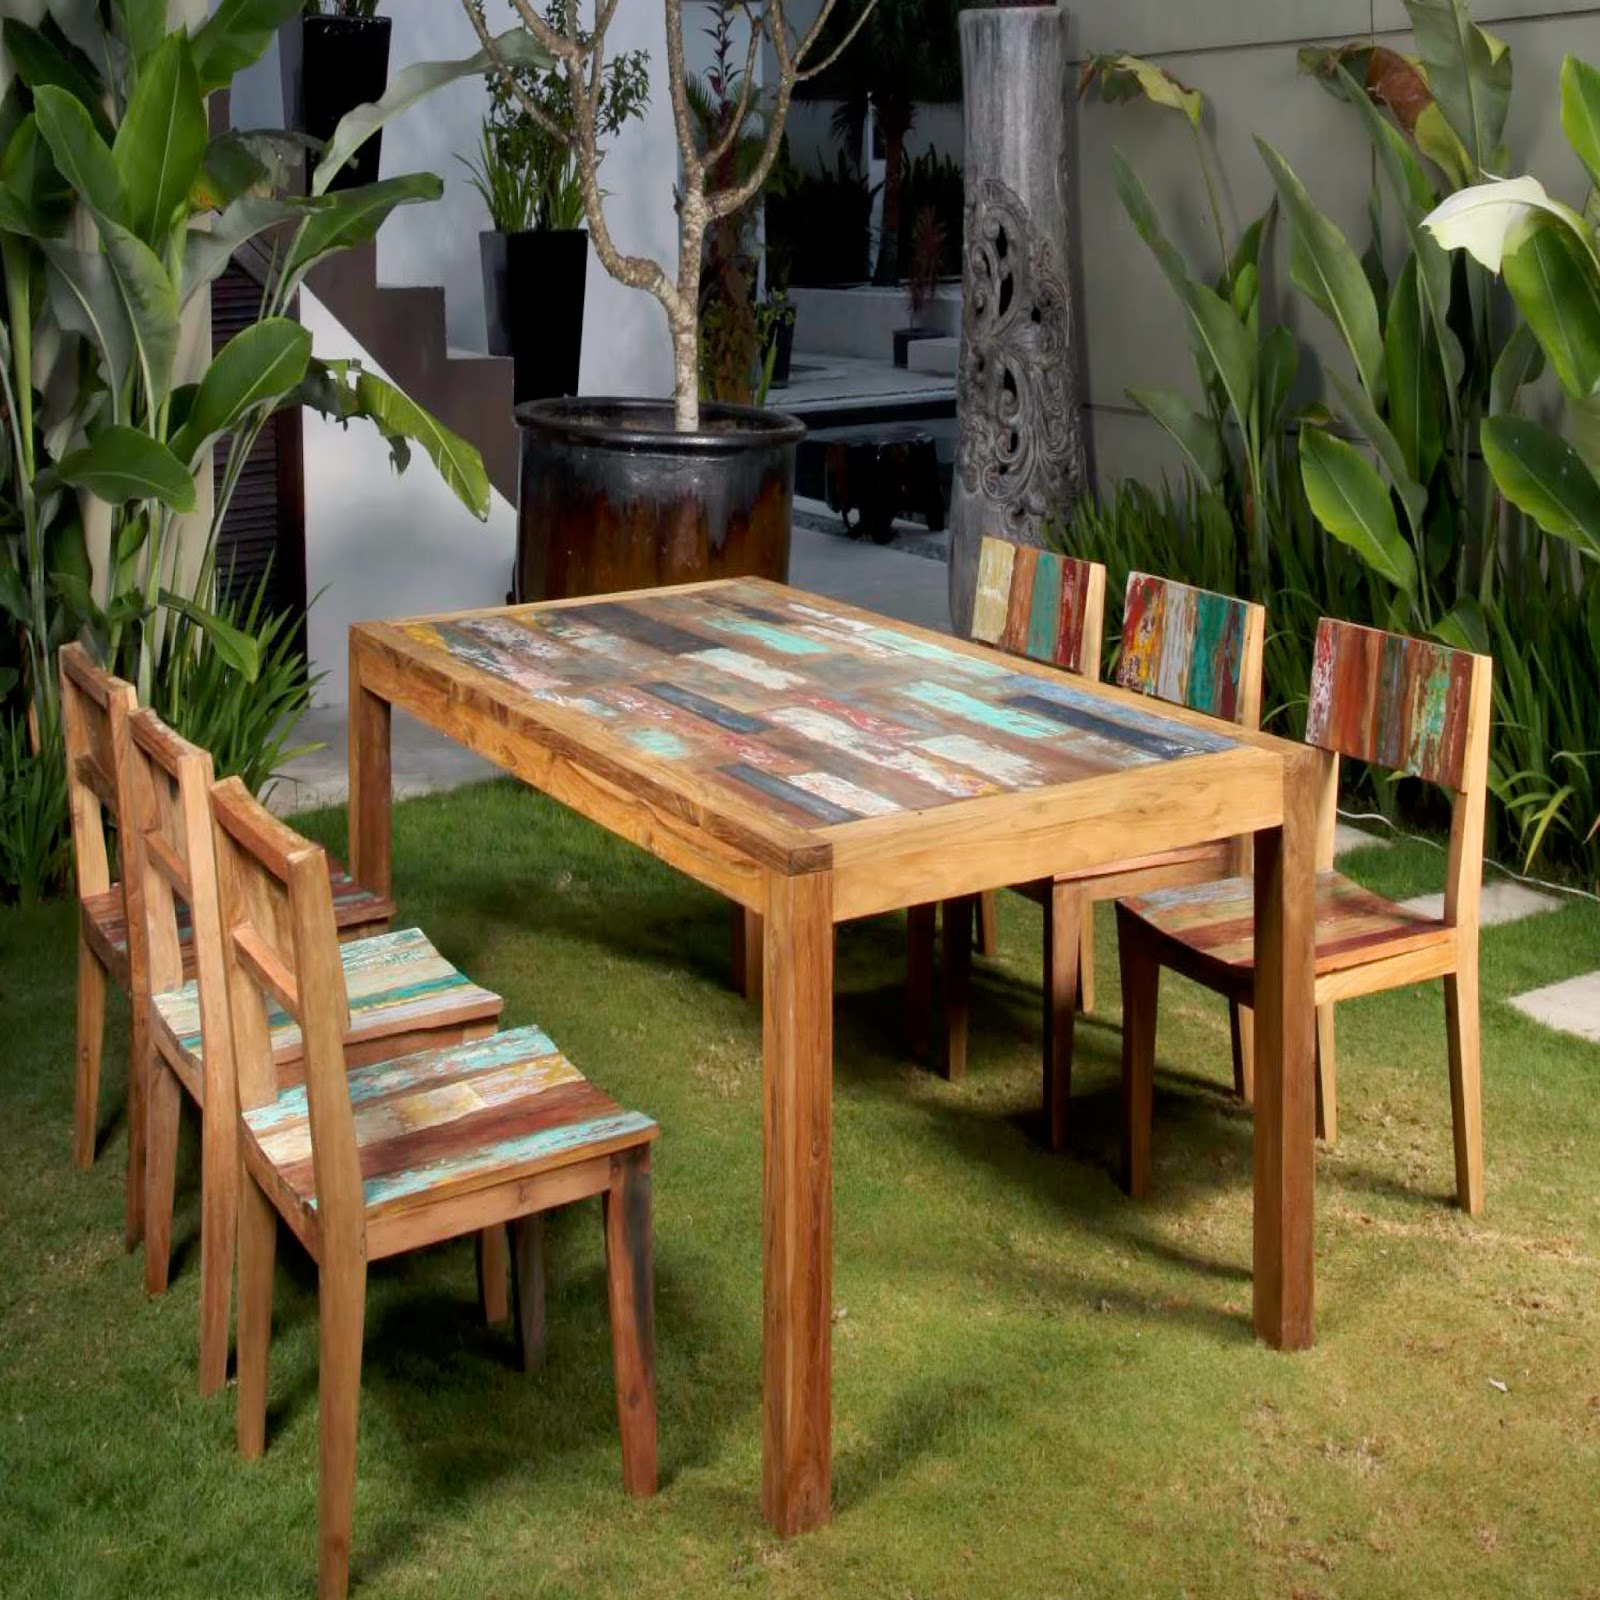 Some of the popular materials which are used for making outdoor furniture includes plastic wrought iron wicker aluminium and wood